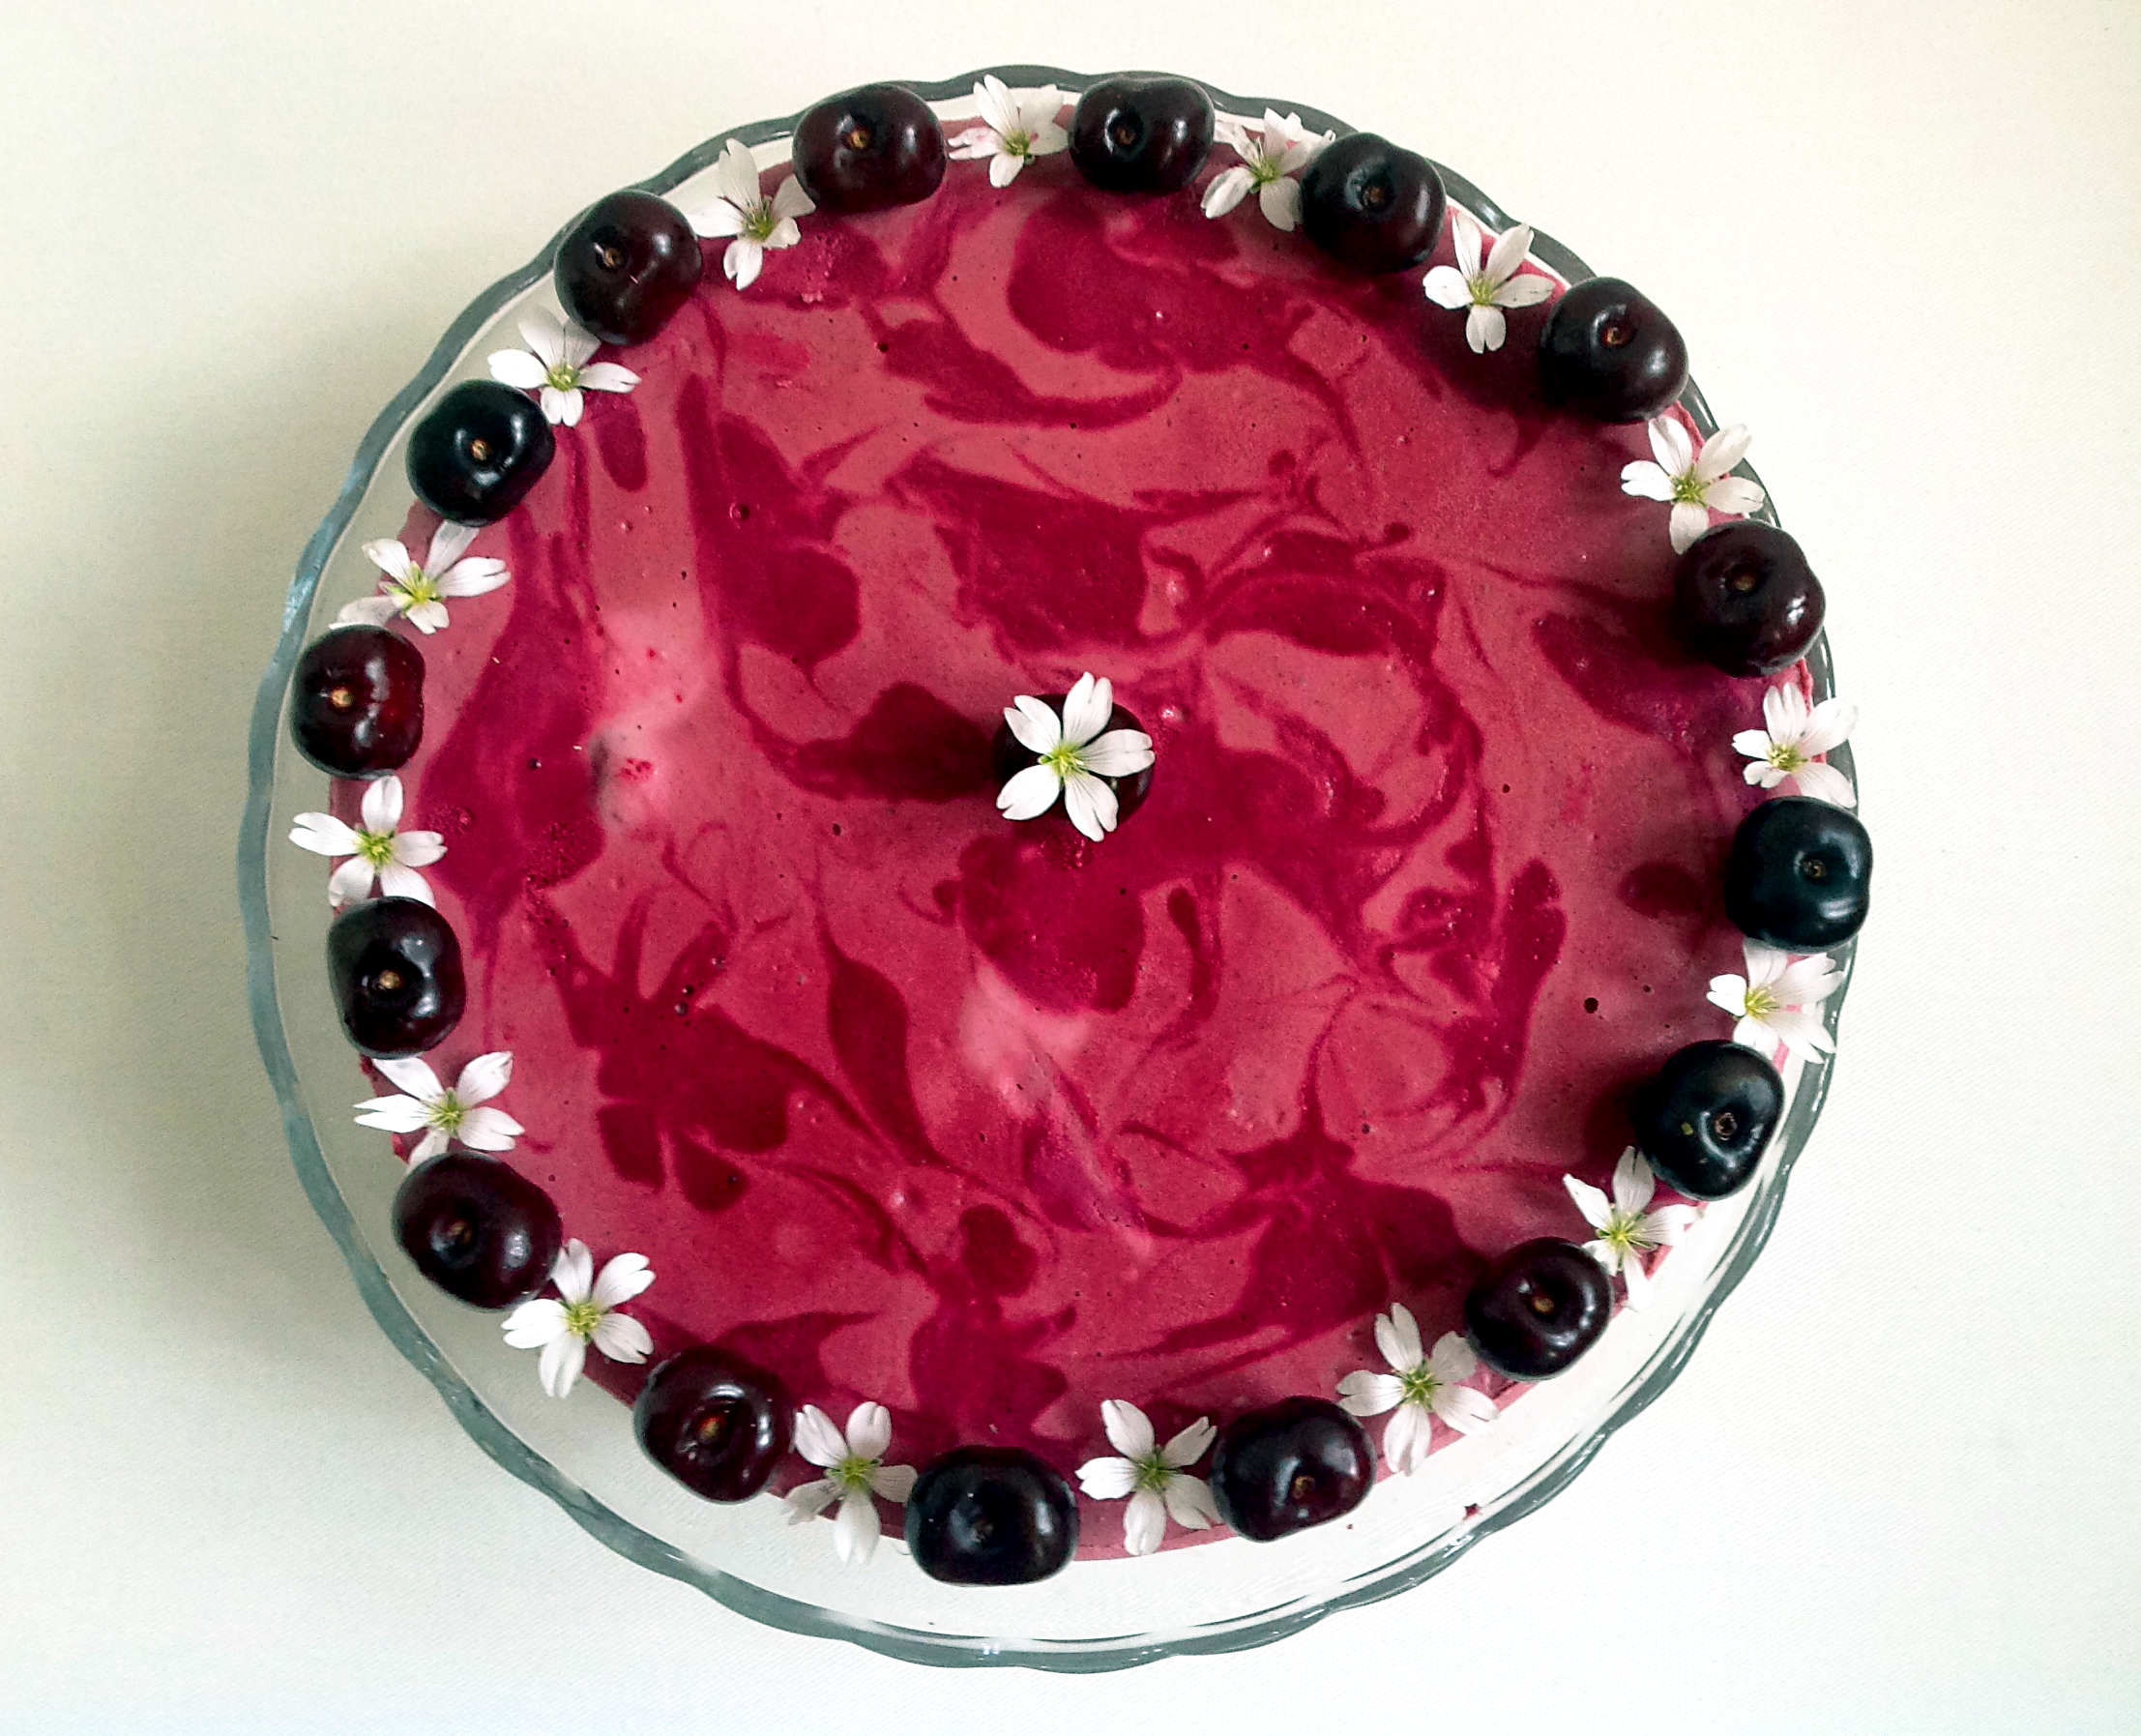 """Cherry blossom"" fermented raw cheesecake"